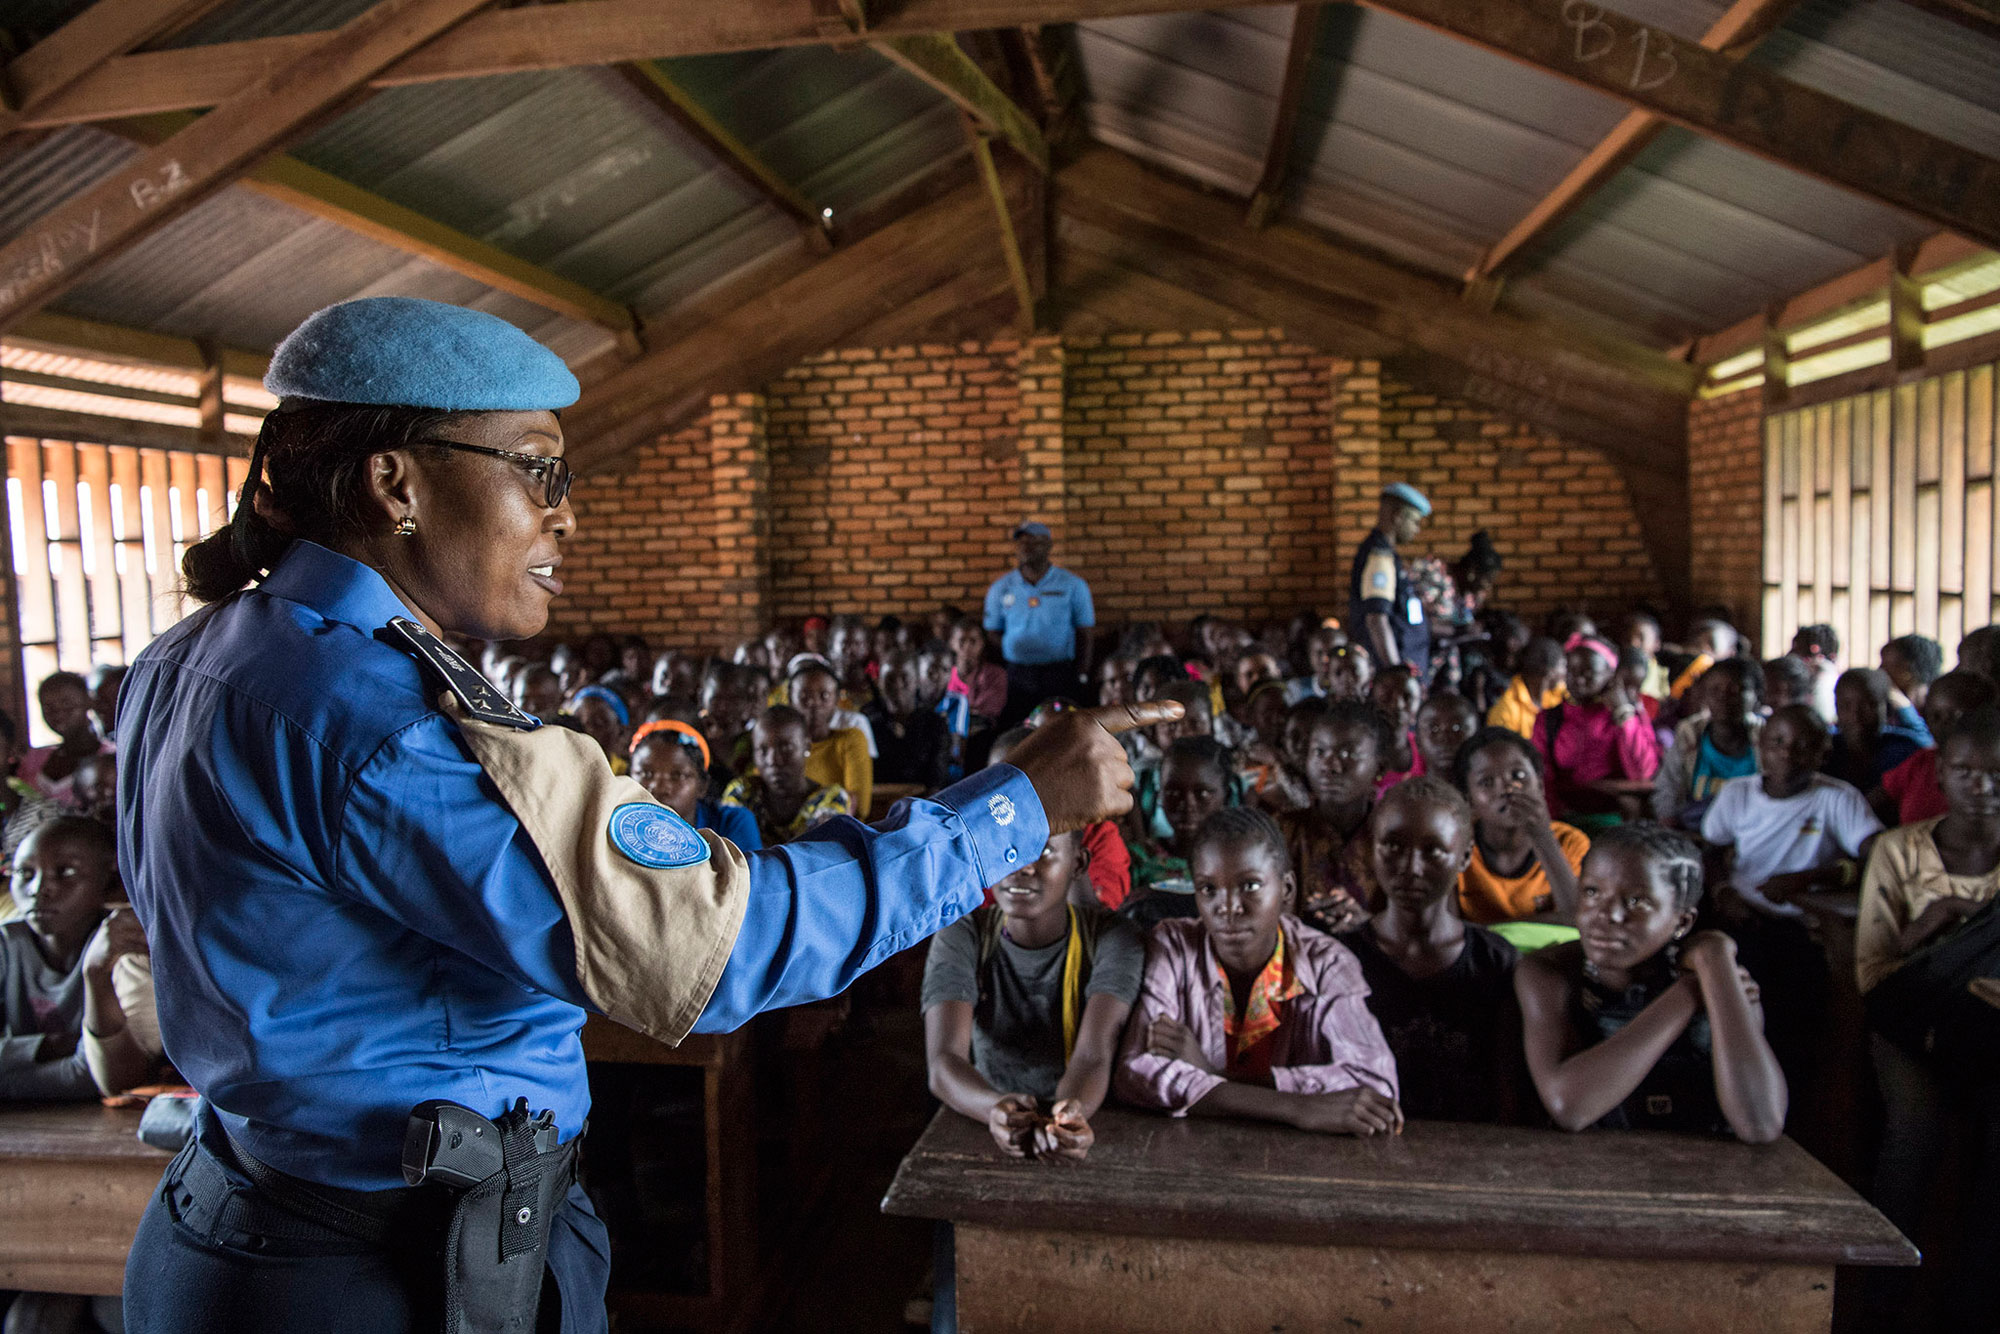 Gladys Ngwepekeum Nkeh is a United Nations police officer from Cameroon, one of some 12,870 uniformed personnel working with the UN peacekeeping mission in the Central African Republic.